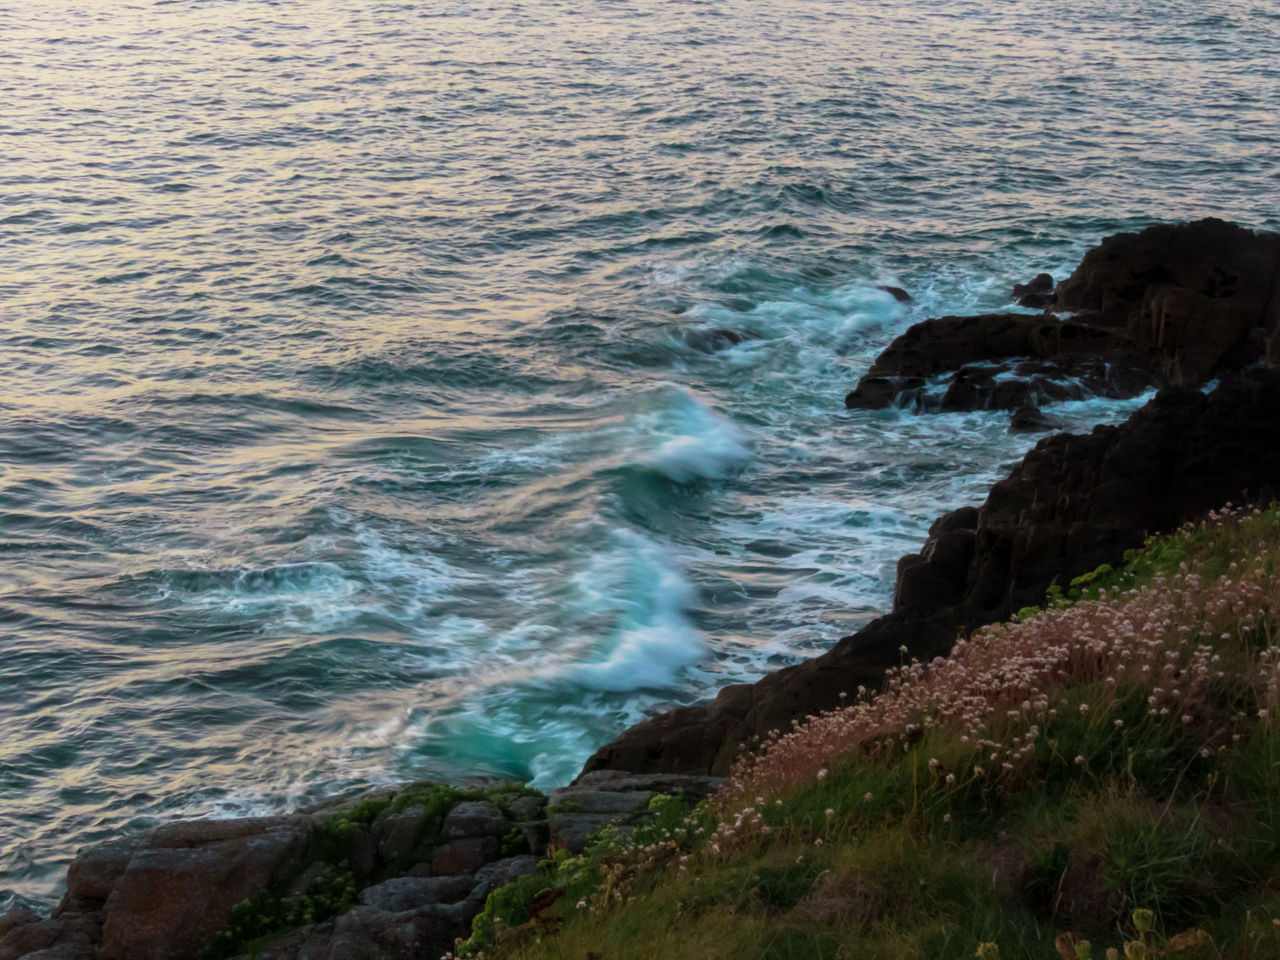 sea, nature, wave, water, no people, outdoors, beauty in nature, day, sky